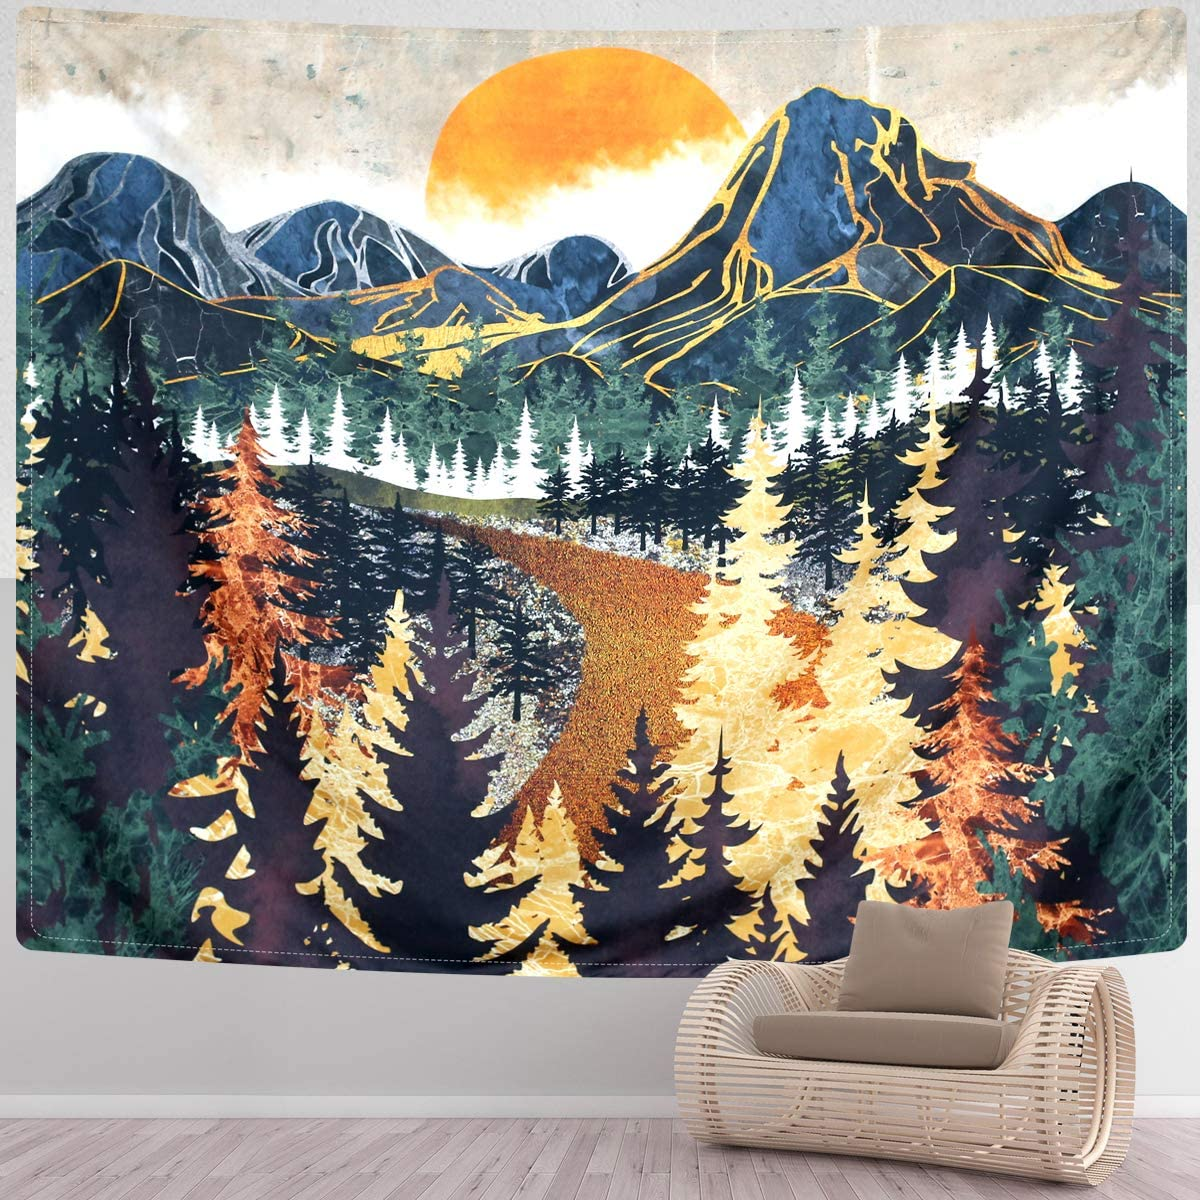 SENYYI Mountain Tapestry Wall Hanging Forest Trees Art Tapestry Sunset Tapestry Road in Nature Landscape Home Decor for Room 70.9 x 92.5 inches